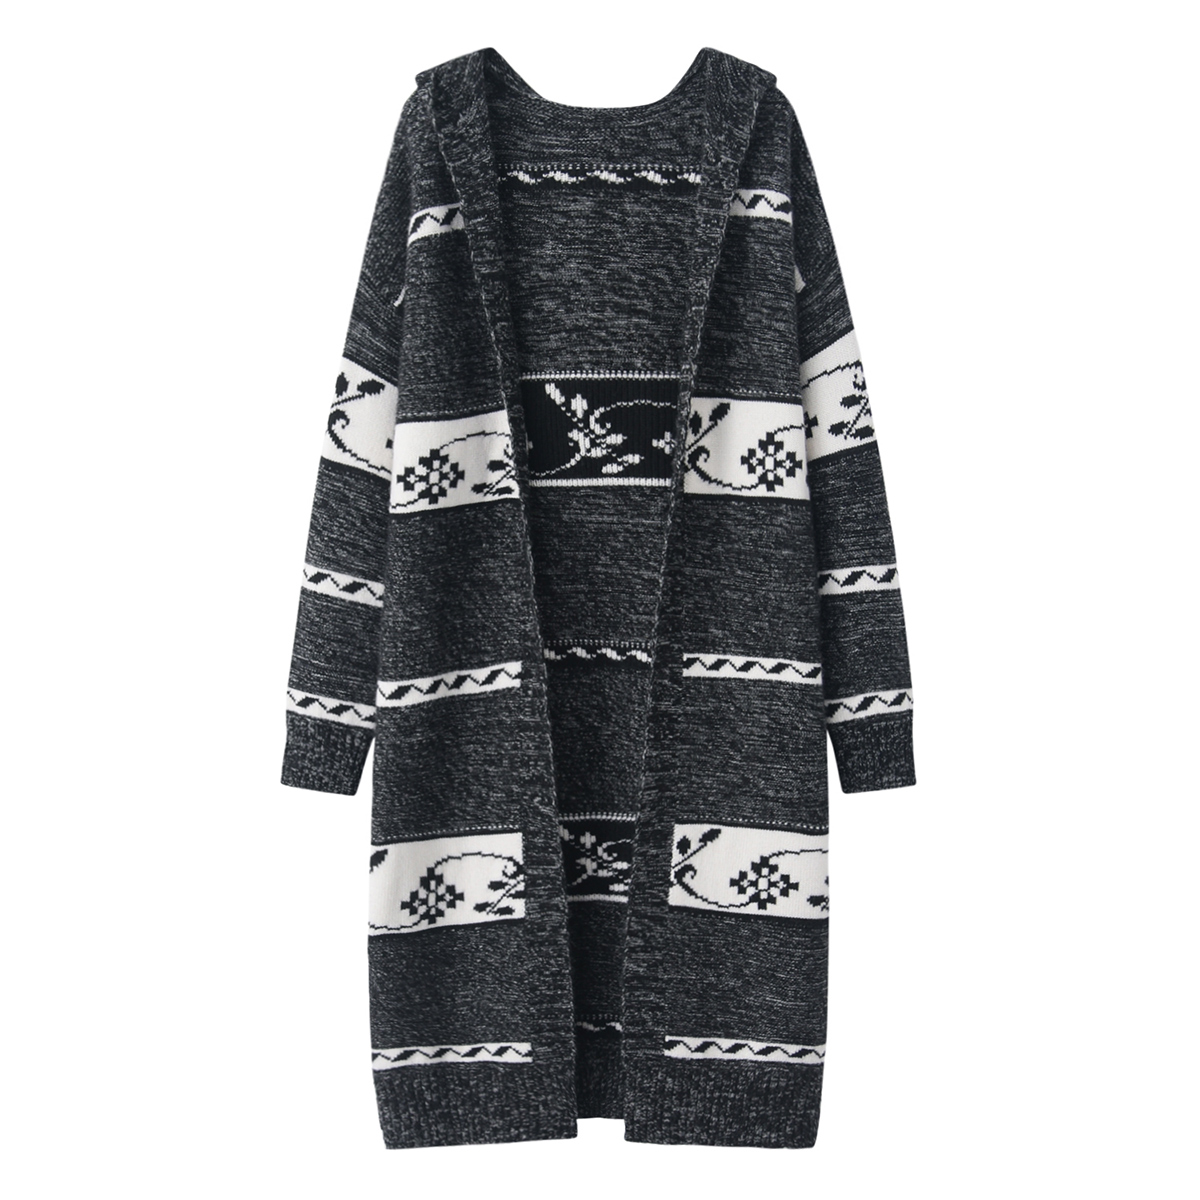 Autumn and winter fashion cashmere sweater womens Hooded Sweater thickened windbreaker jacquard Korean medium and long coat